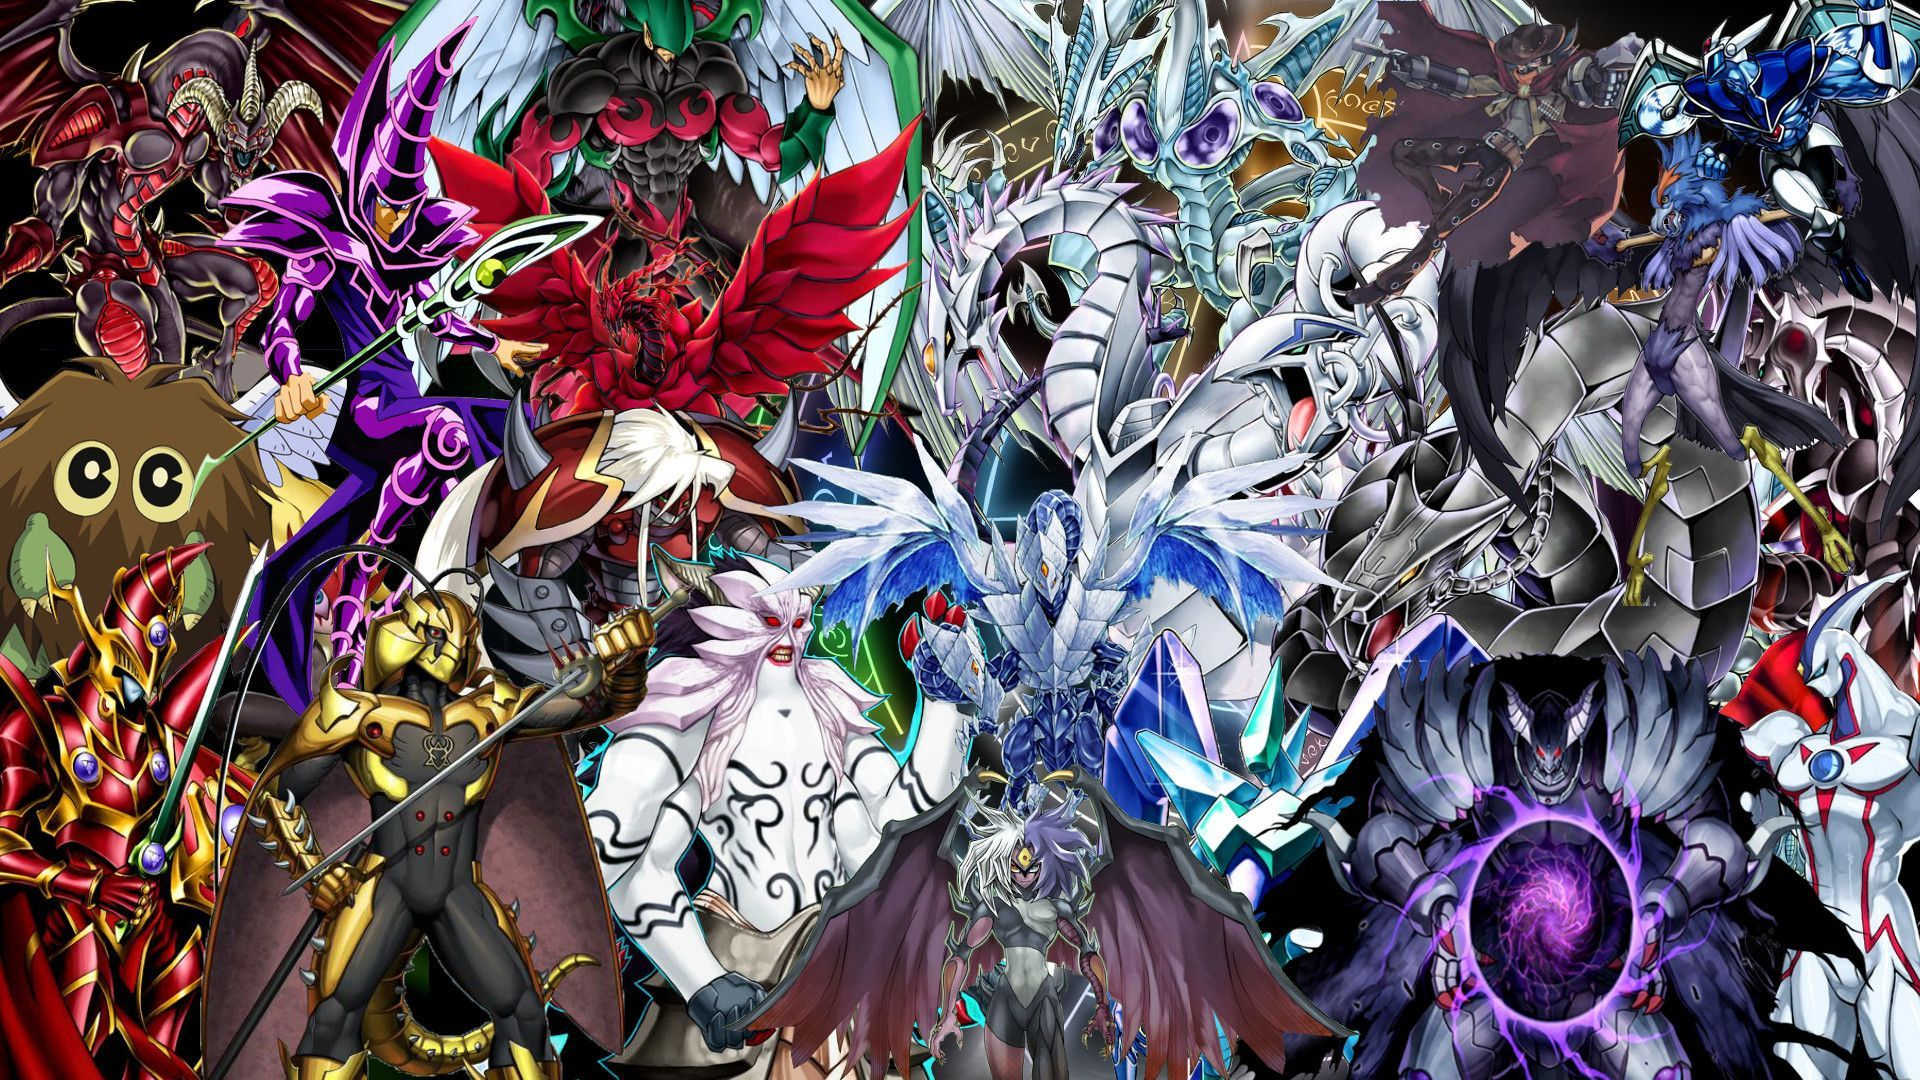 Wallpapers Yugioh Yu Gi Oh Wallpapers Anime Hq Yu Gi Oh Pictures 4k Wallpapers Anime Wallpaper Wallpaper Backgrounds Yugioh